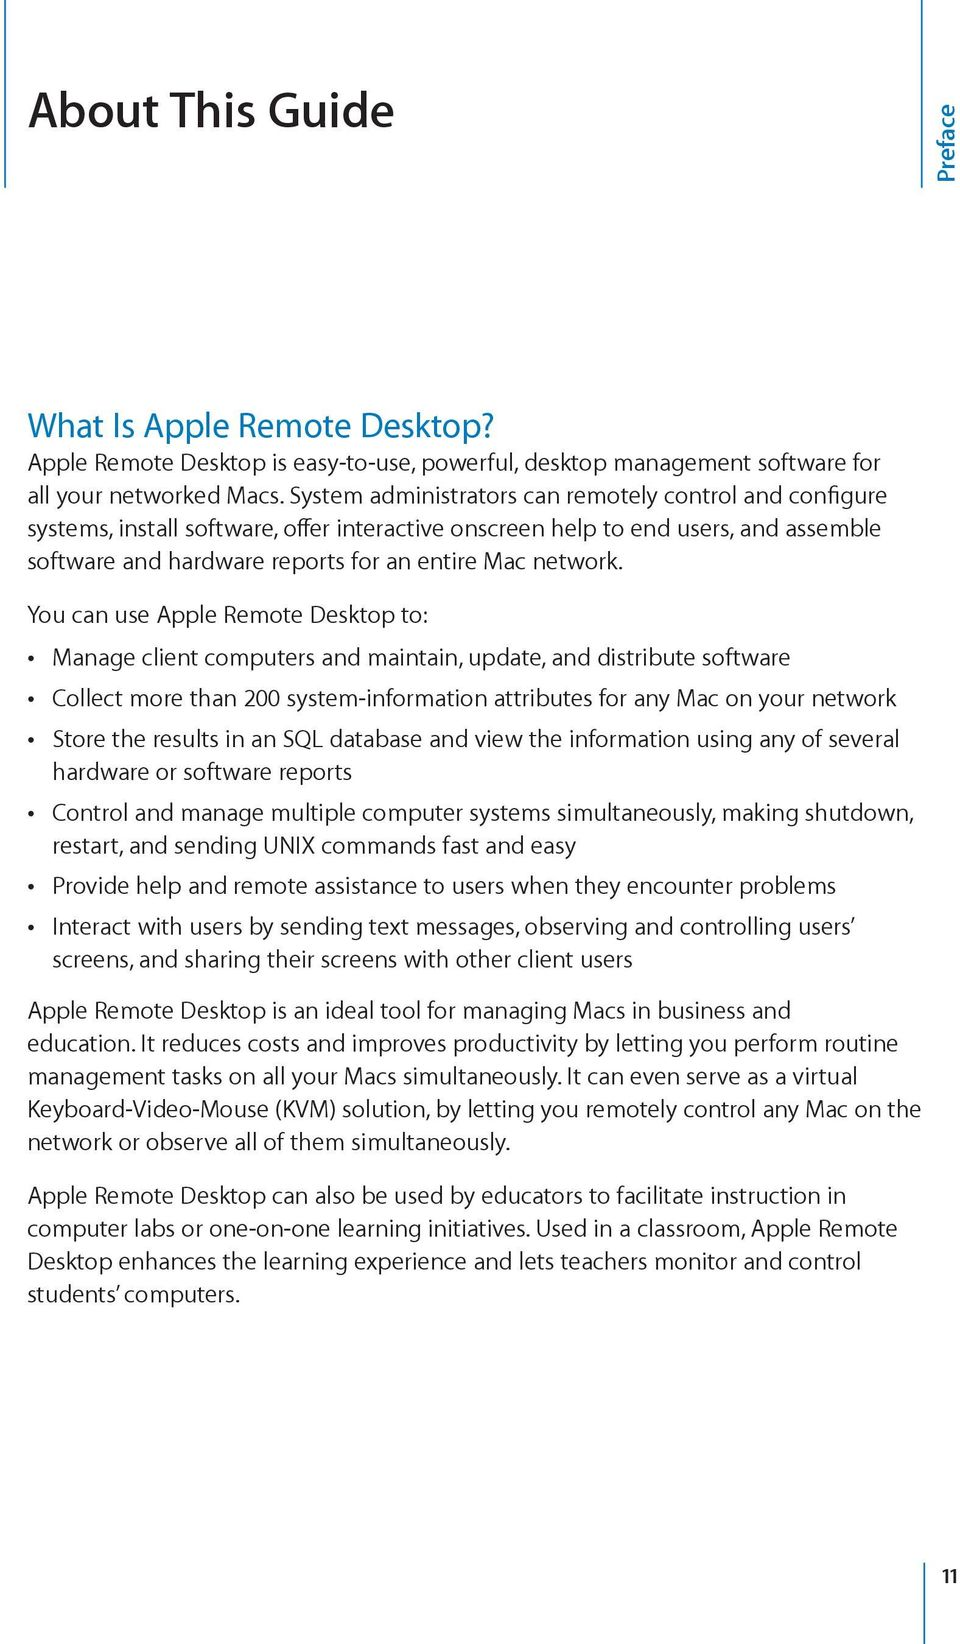 You can use Apple Remote Desktop to: Manage client computers and maintain, update, and distribute software Collect more than 200 system-information attributes for any Mac on your network Store the